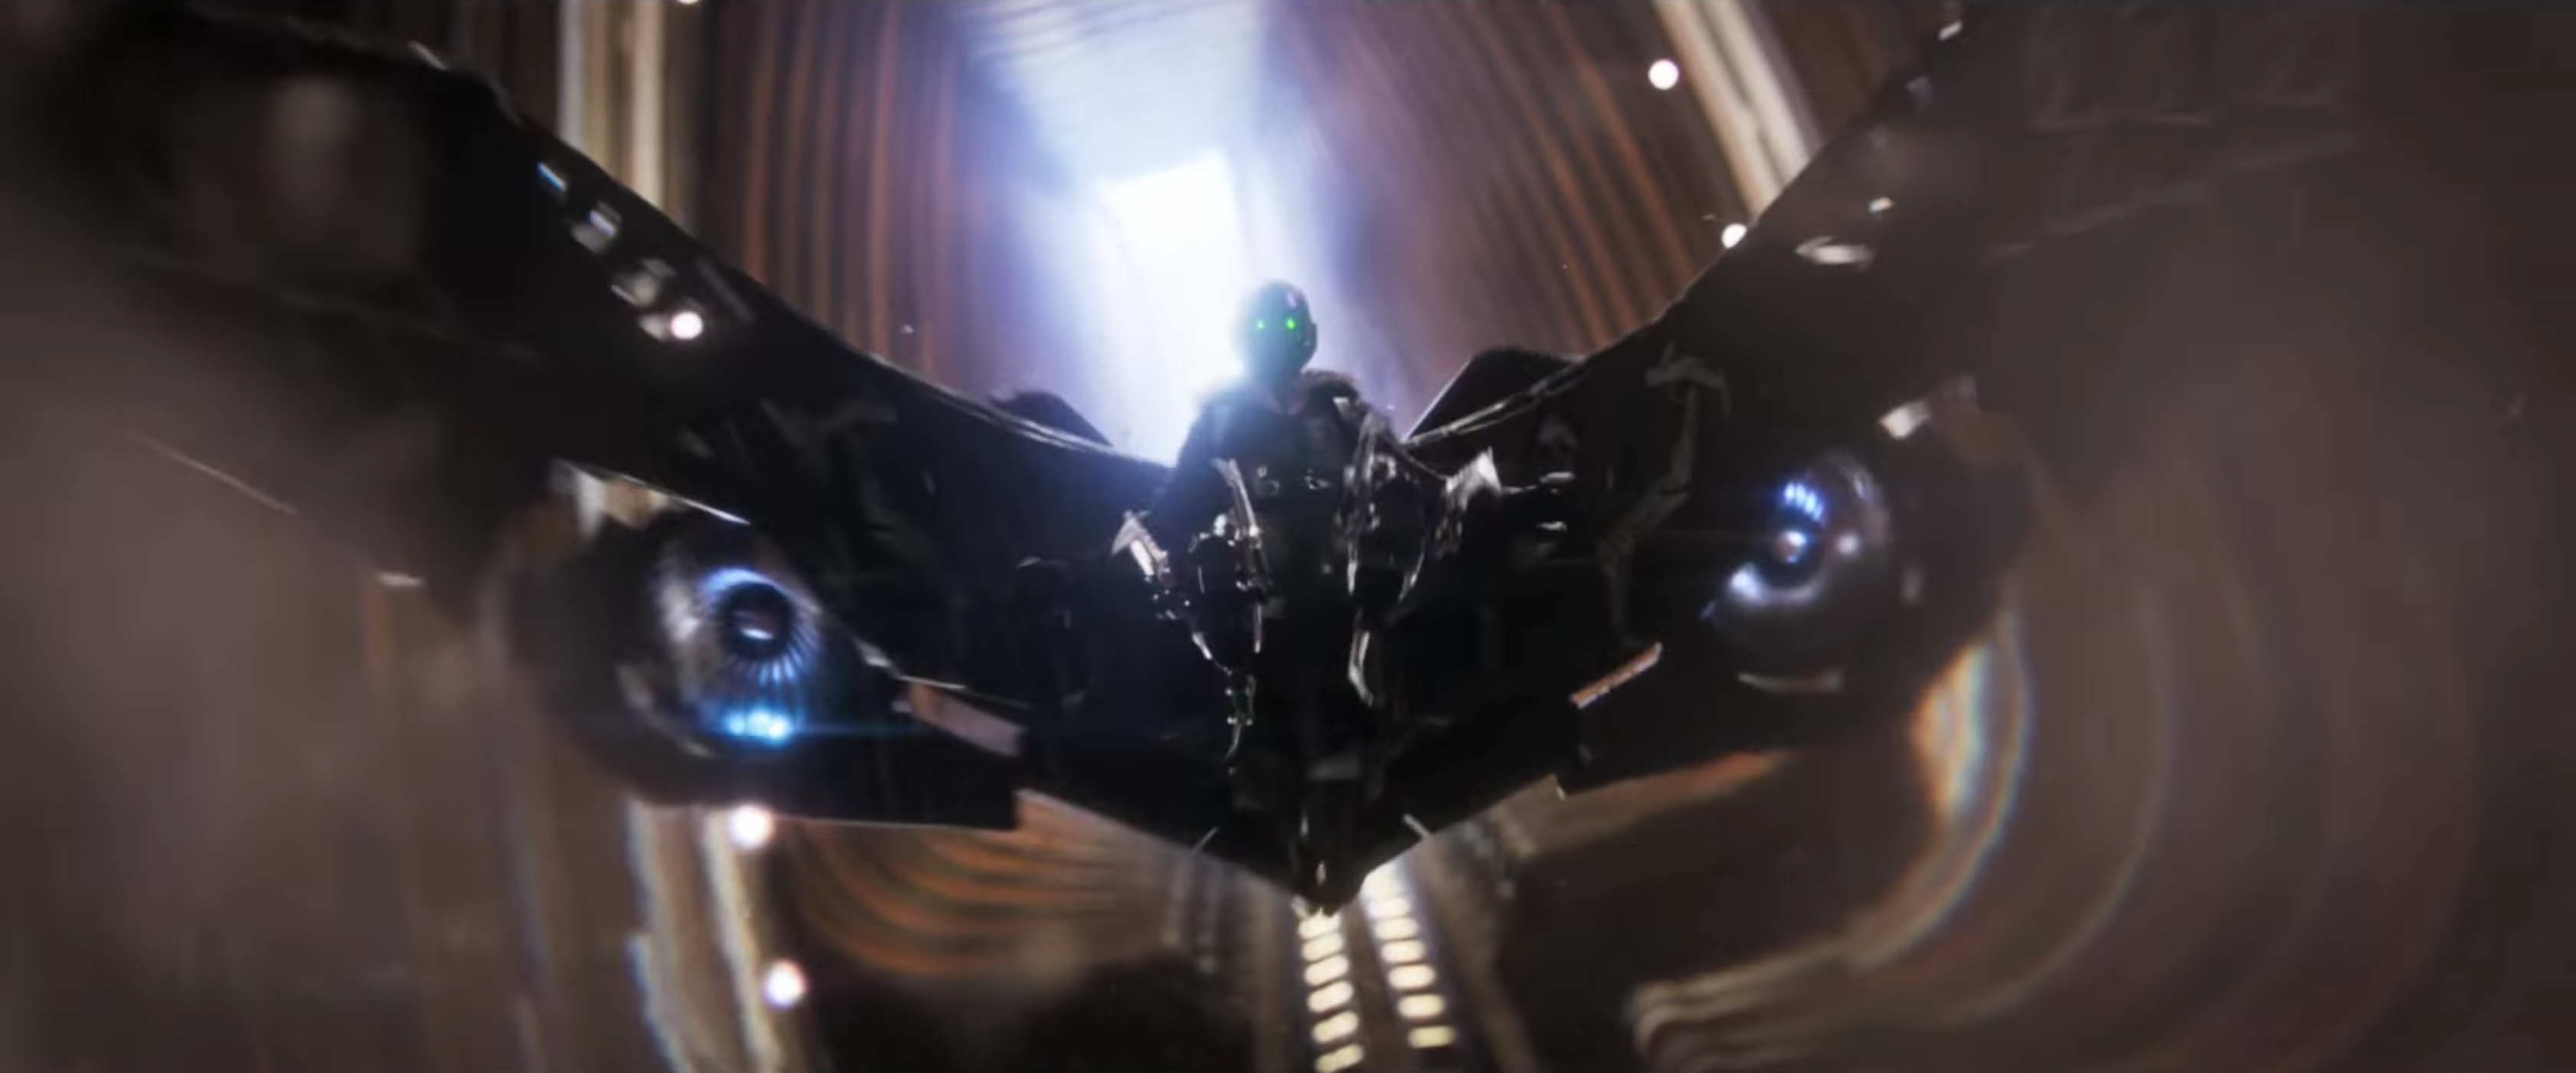 Spider-Man Homecoming Trailer Images Reveal the Vulture in Action